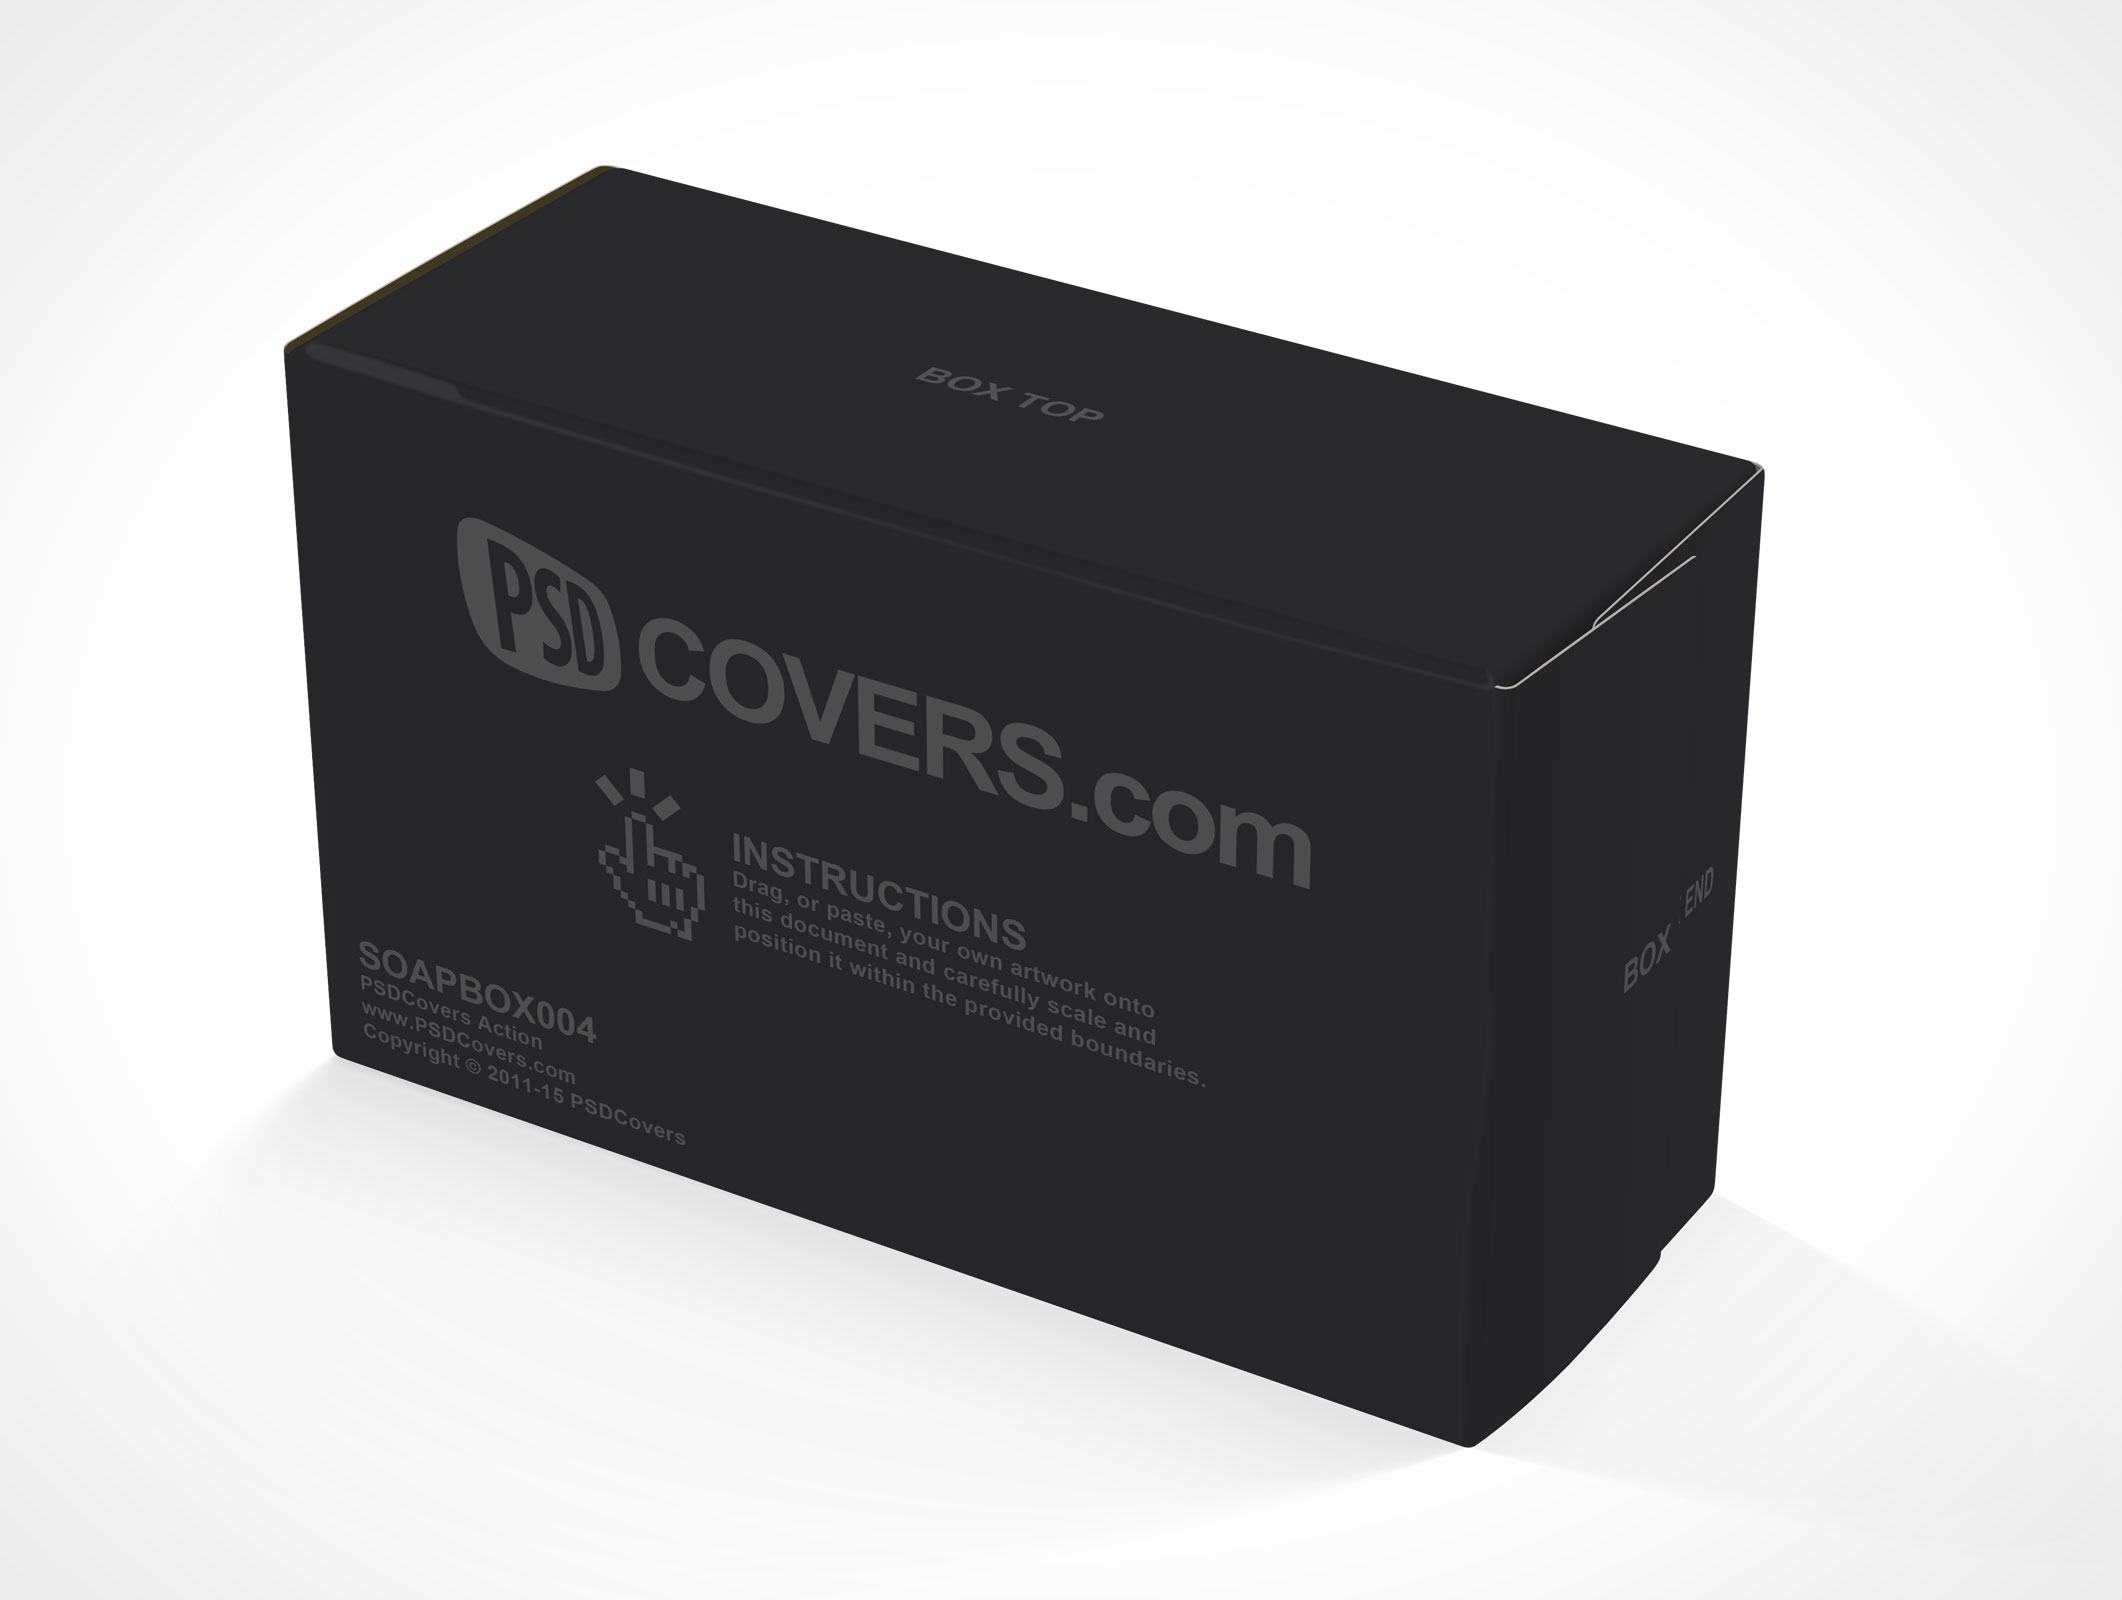 Box Archives • PSDCovers